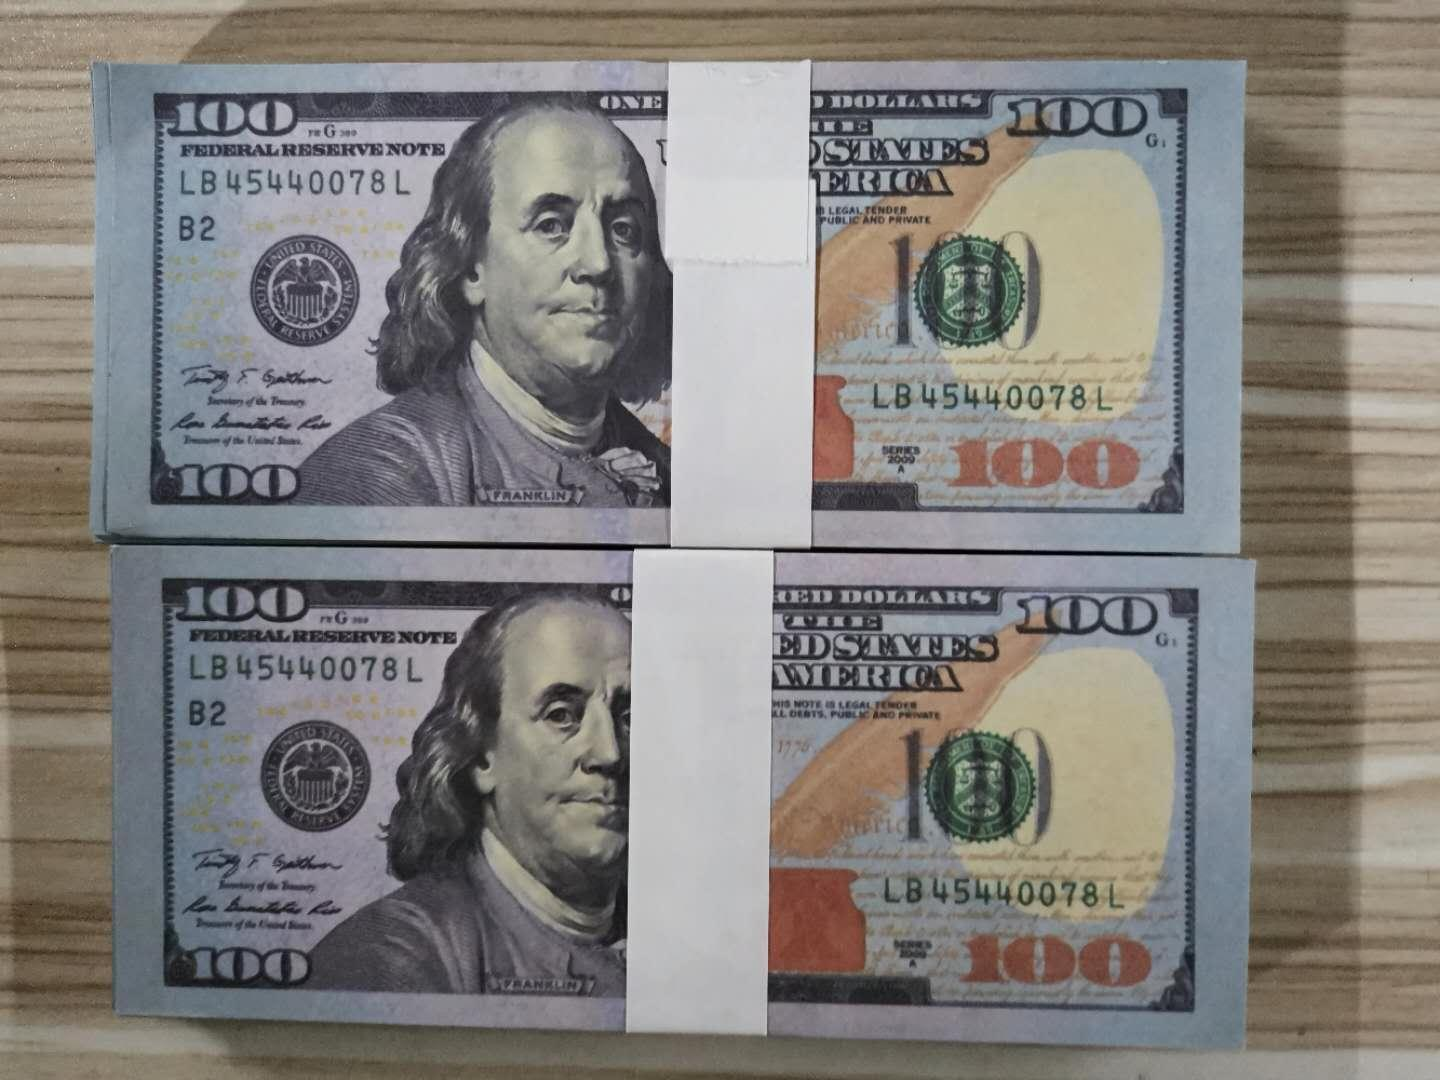 USA Banknote America Fake Banknotes New 100 Dollars Banknotes Paper Money Collection for Home Decoration Gift Bills Fake Currency